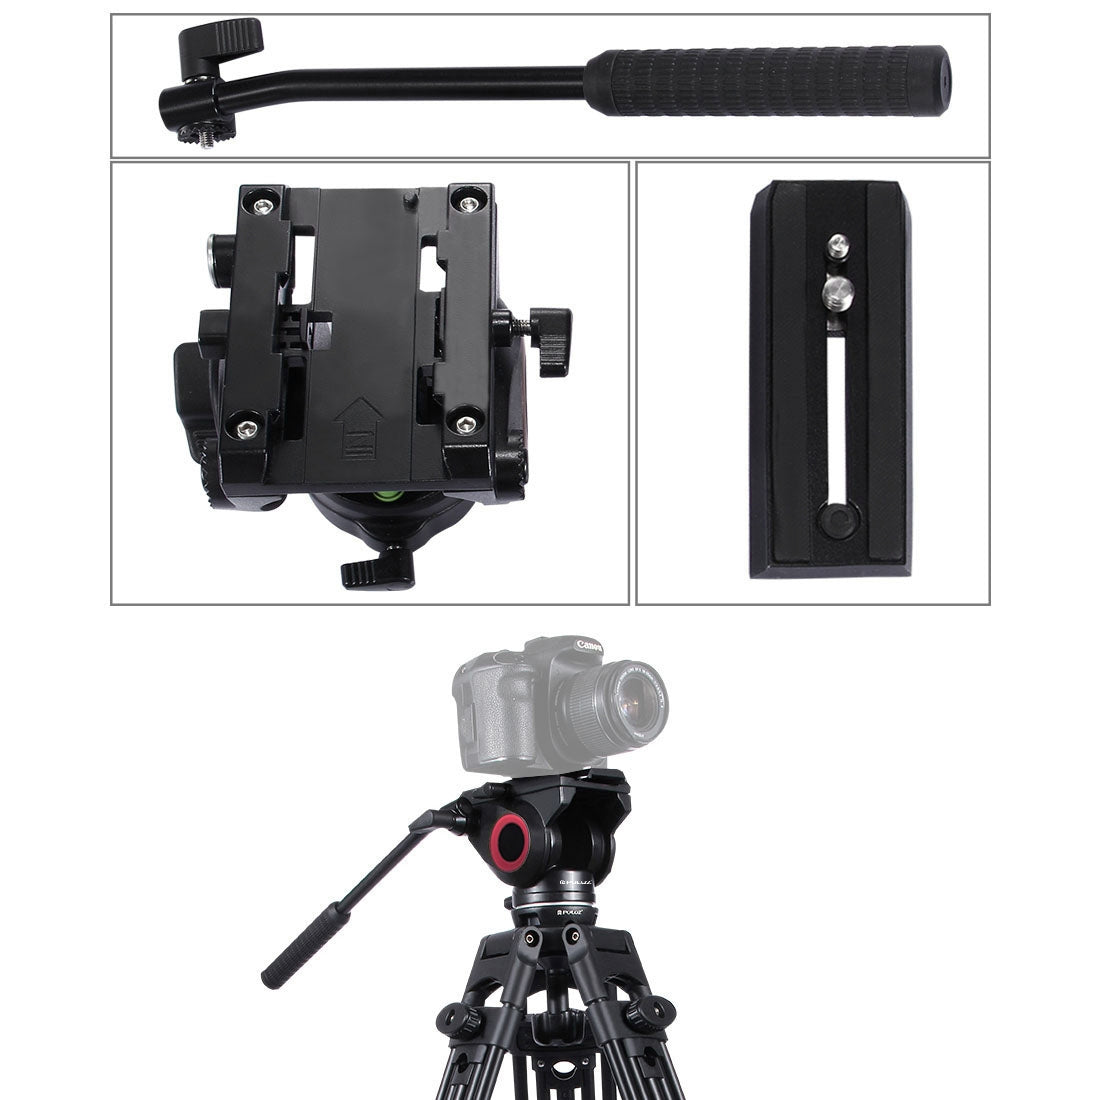 Heavy Duty Video Camera Tripod Action Fluid Drag Head with Sliding Plate for DSLR & SLR Cameras, Large Size(Black)